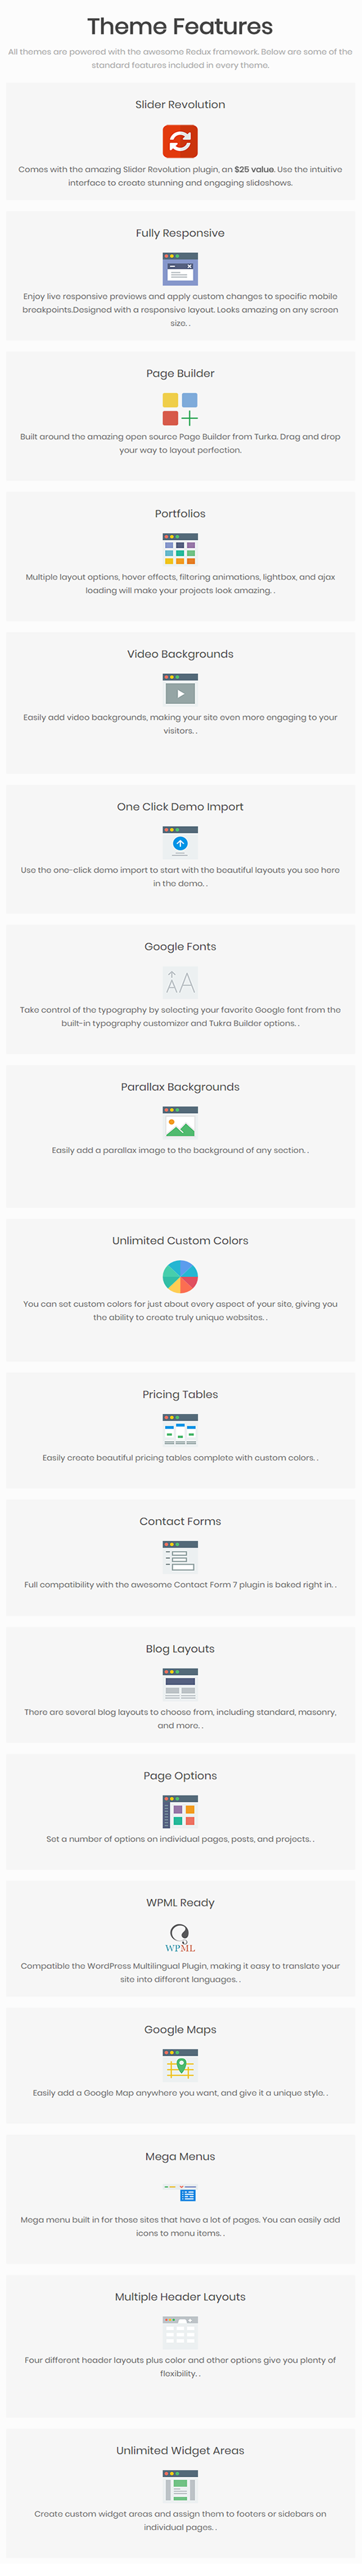 Turka - Multi-Purpose WordPress Theme - 2